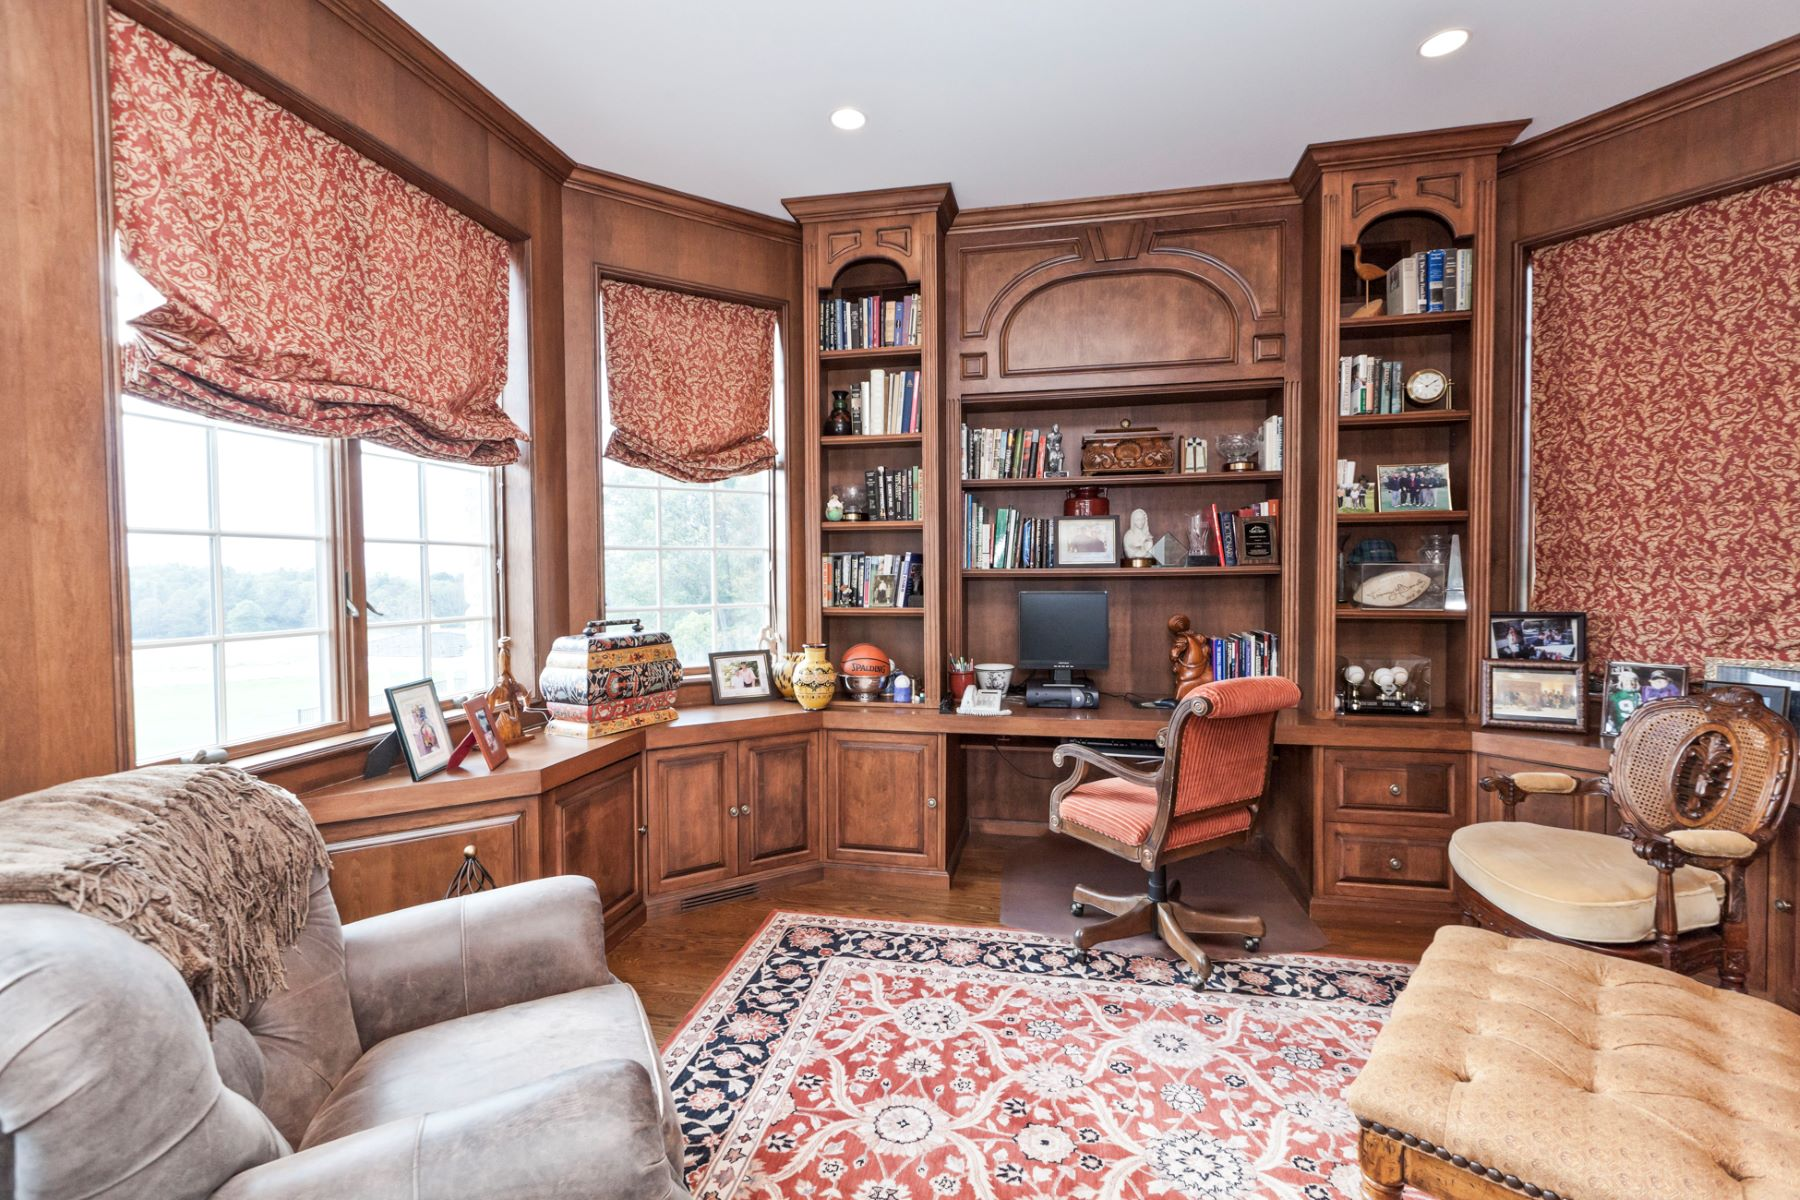 Additional photo for property listing at Offers Ideal Setting For Country Estate 131 Harbourton Woodsville Road, Lambertville, New Jersey 08530 United States